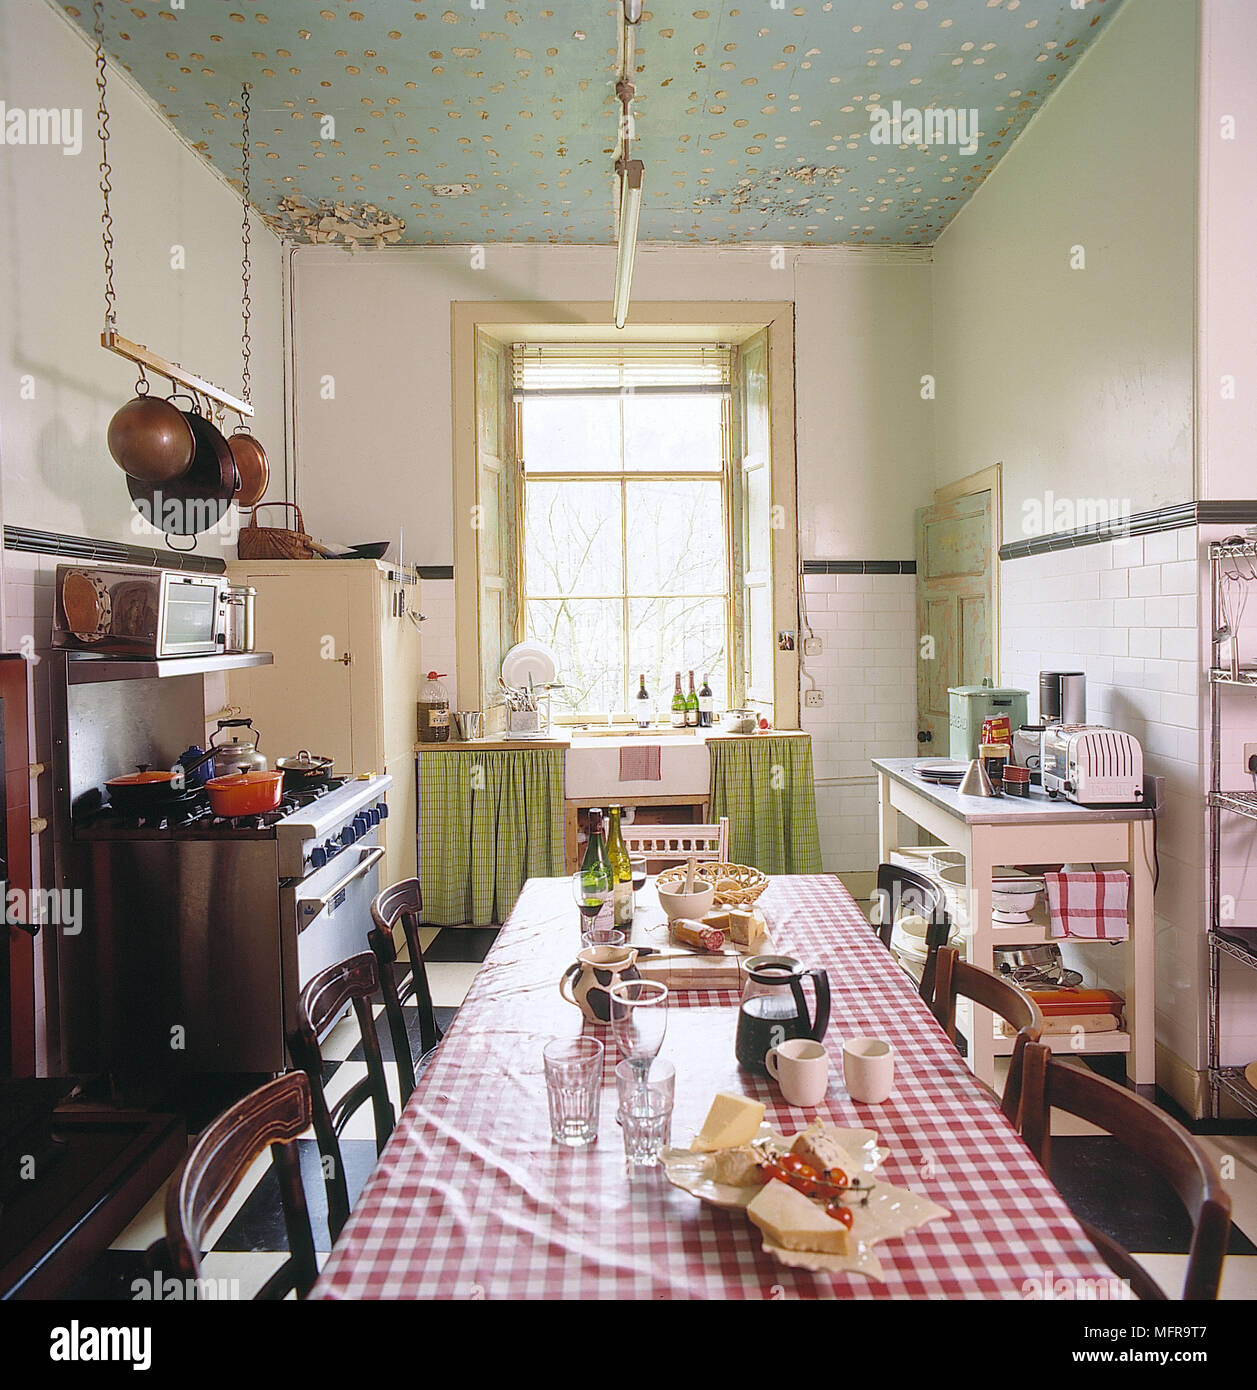 Interiors Traditional Kitchens Green Stockfotos & Interiors ...